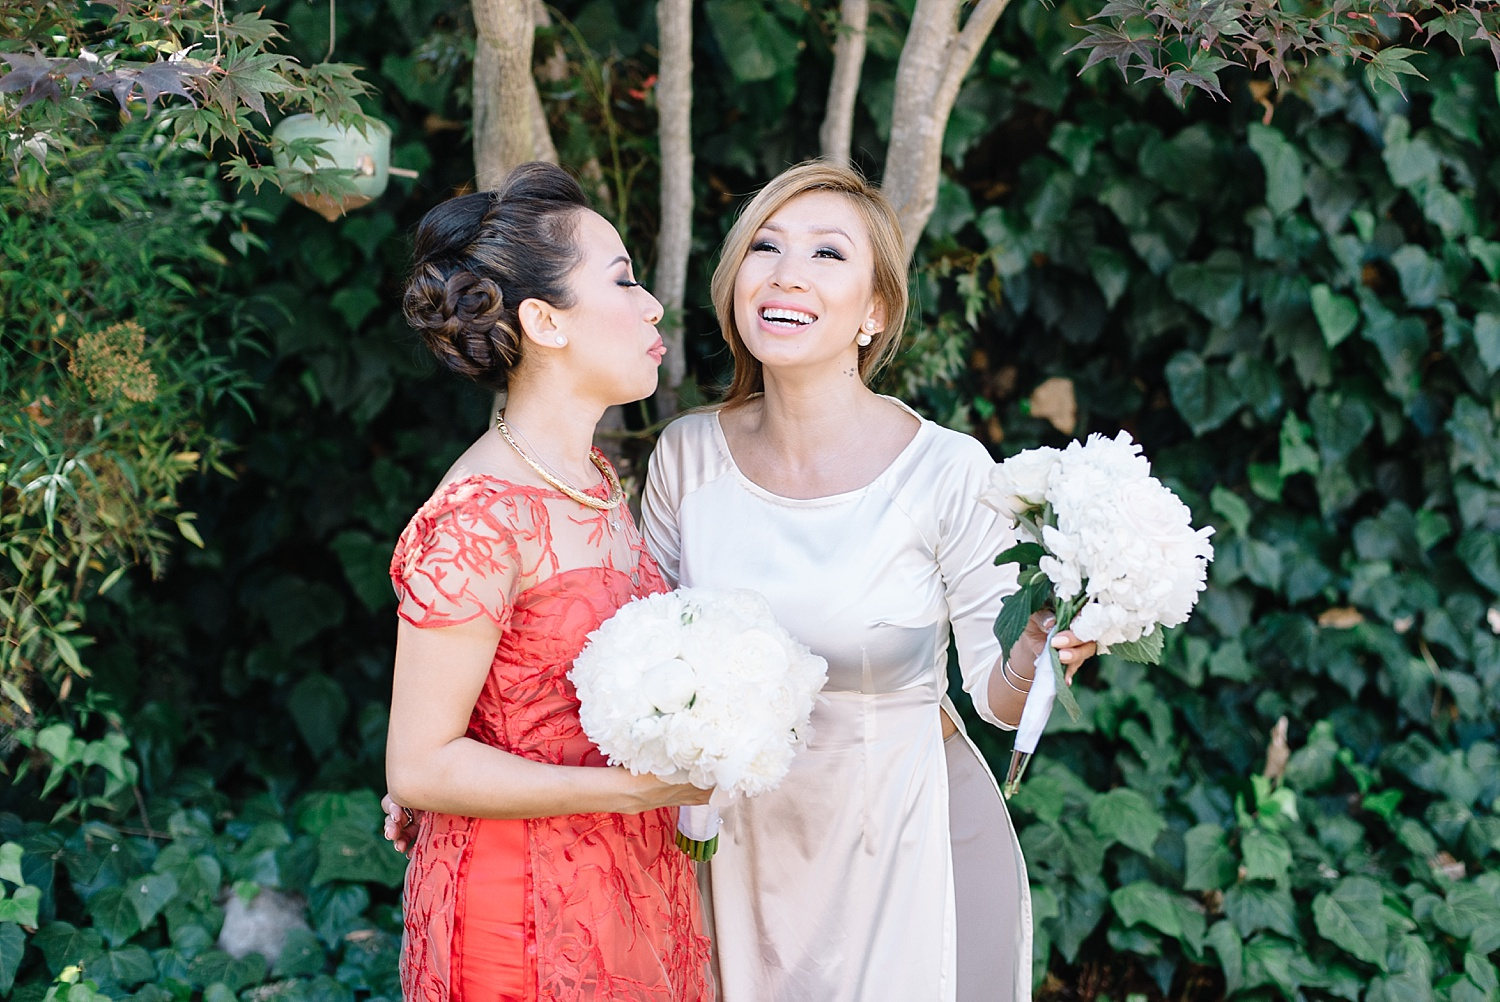 jennifer-jayn-photography-los-altos-wedding-vietnamese-tea-ceremony_0017.jpg